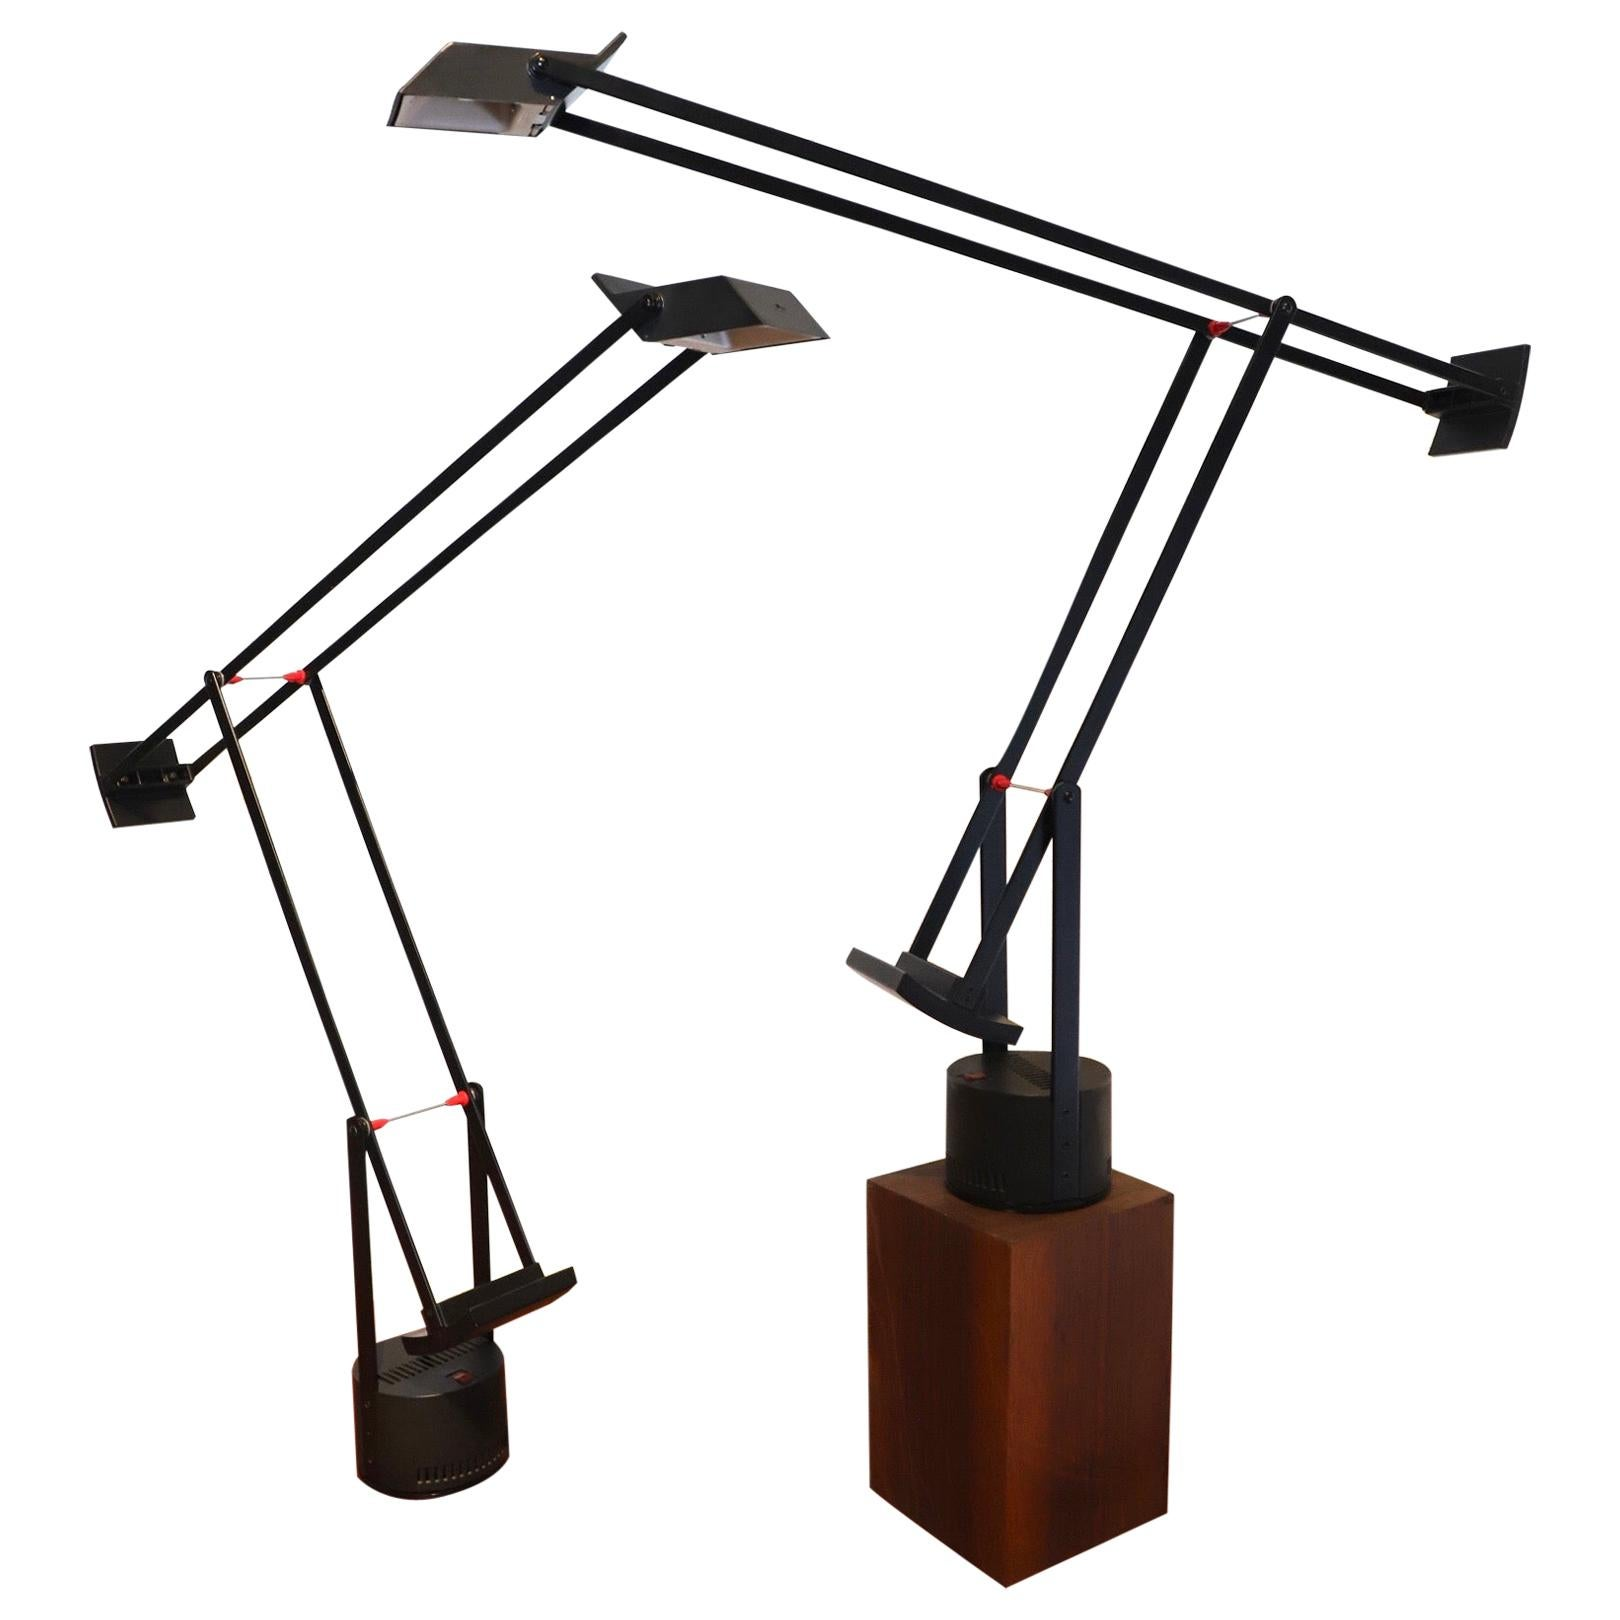 Pair of Articulated Tizio Lamps by Richard Sapper for Artemide